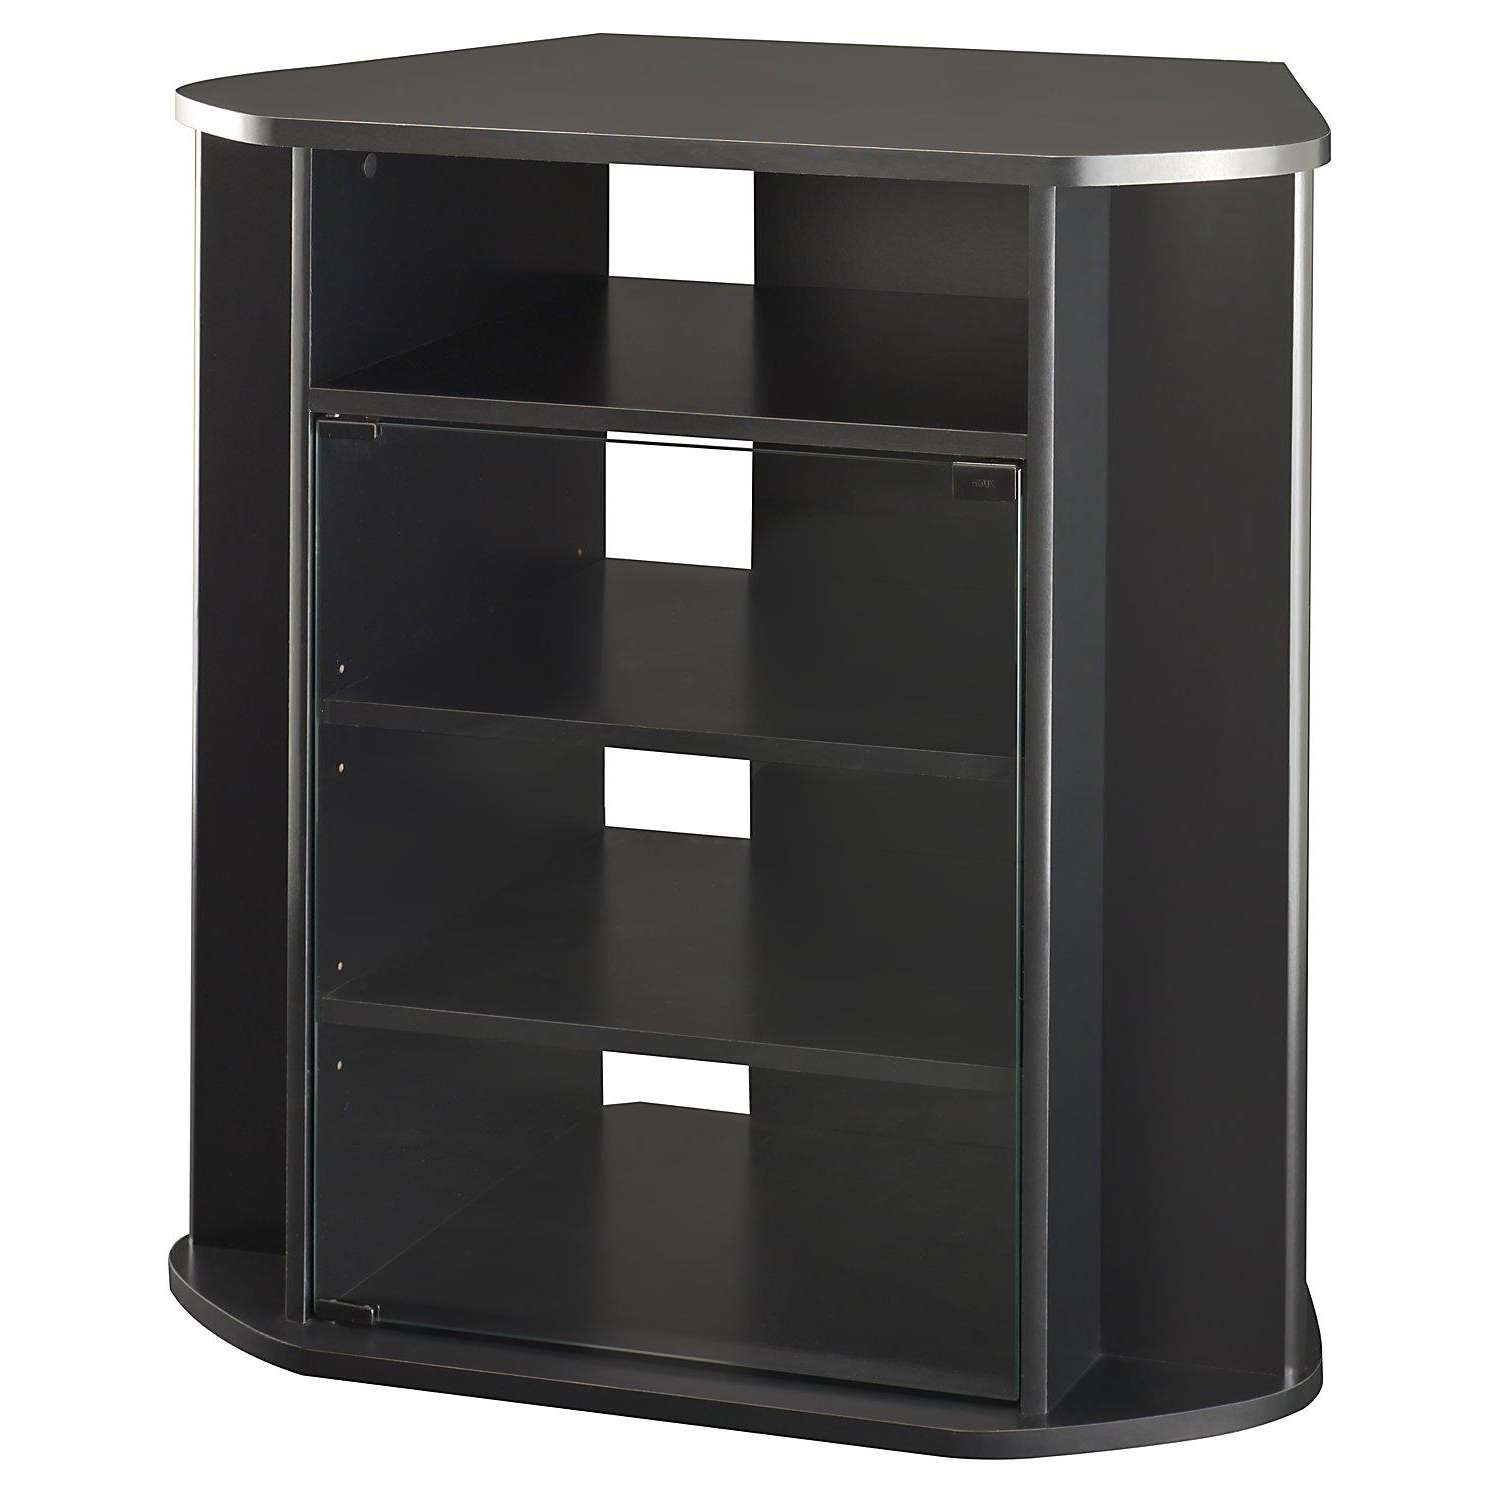 Tall Corner Tv Stand | Ojcommerce For Tall Black Tv Cabinets (View 14 of 20)